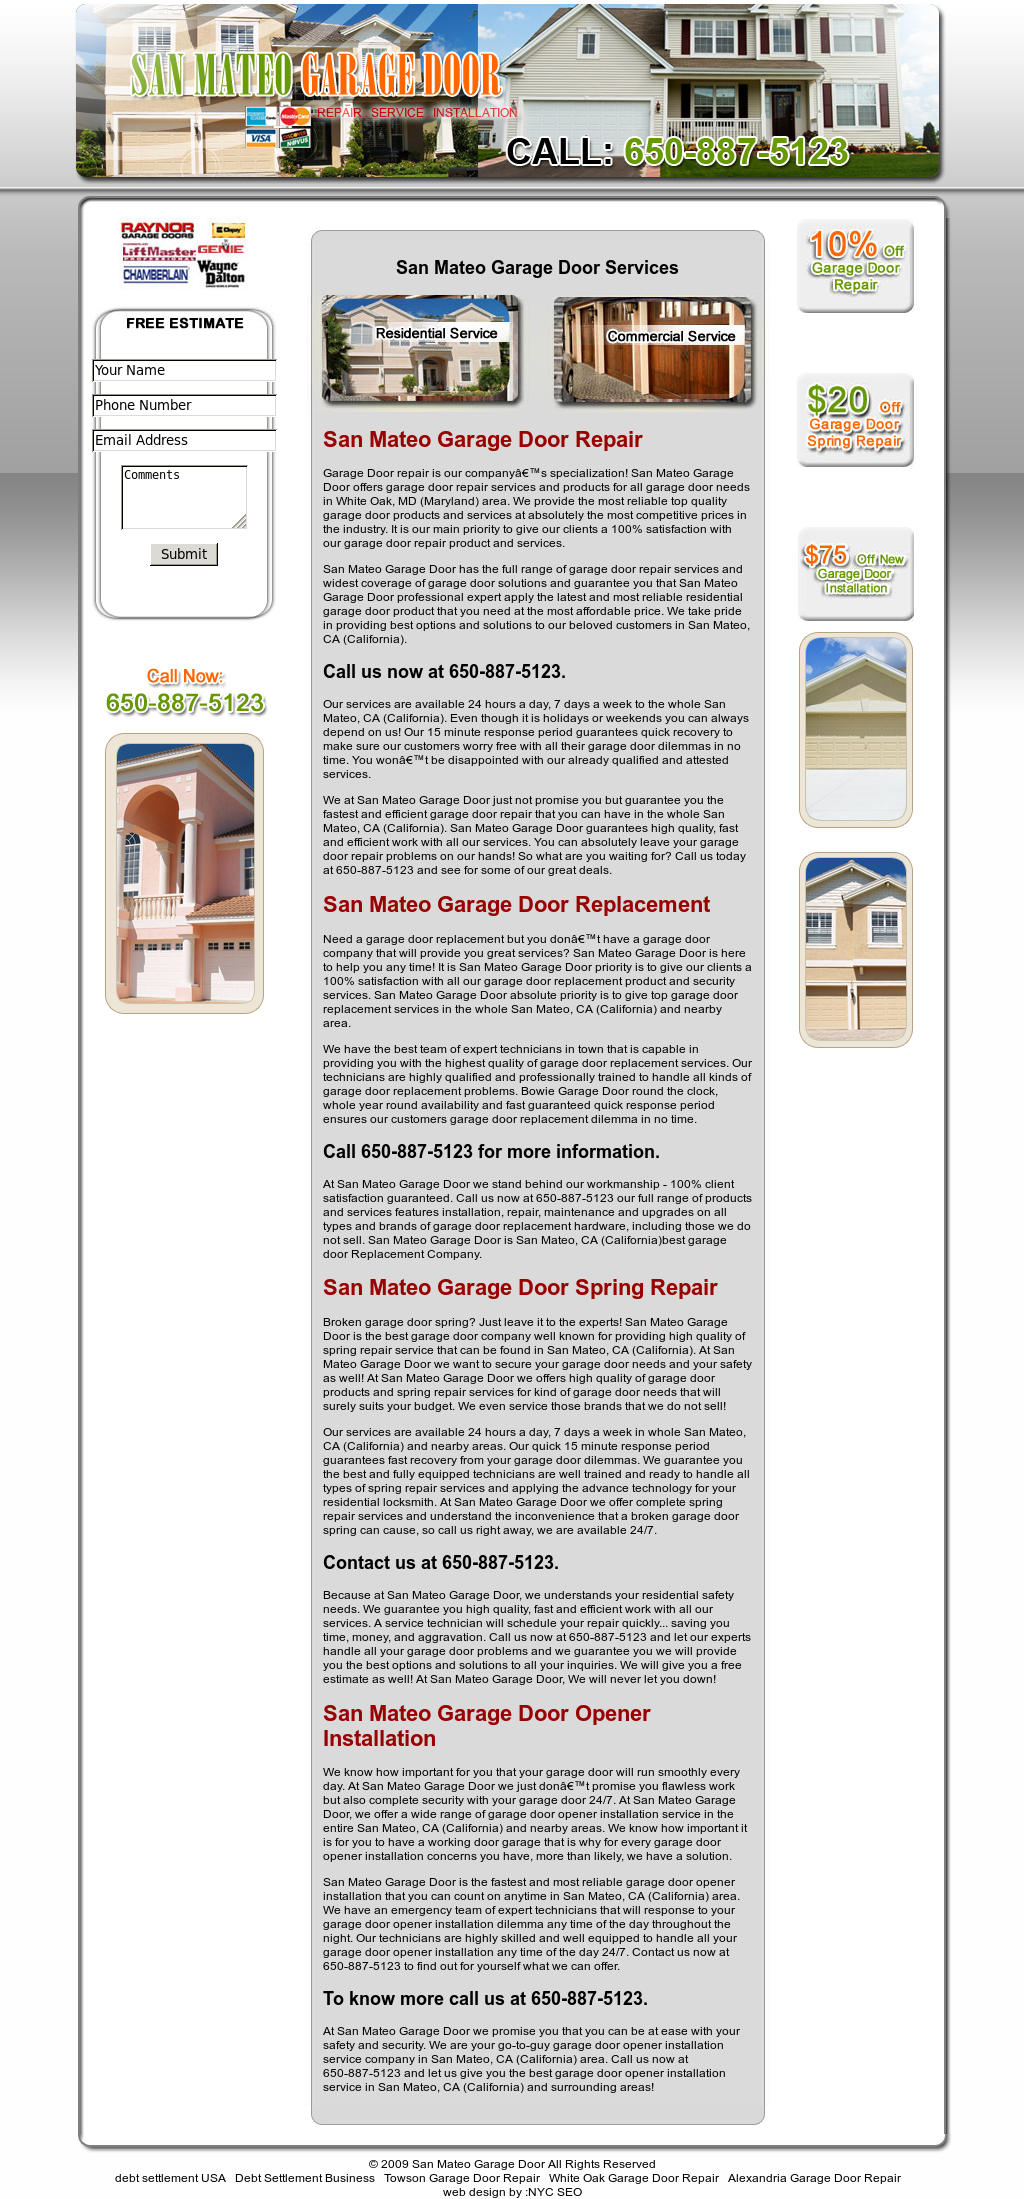 San Mateo Garage Door Website History